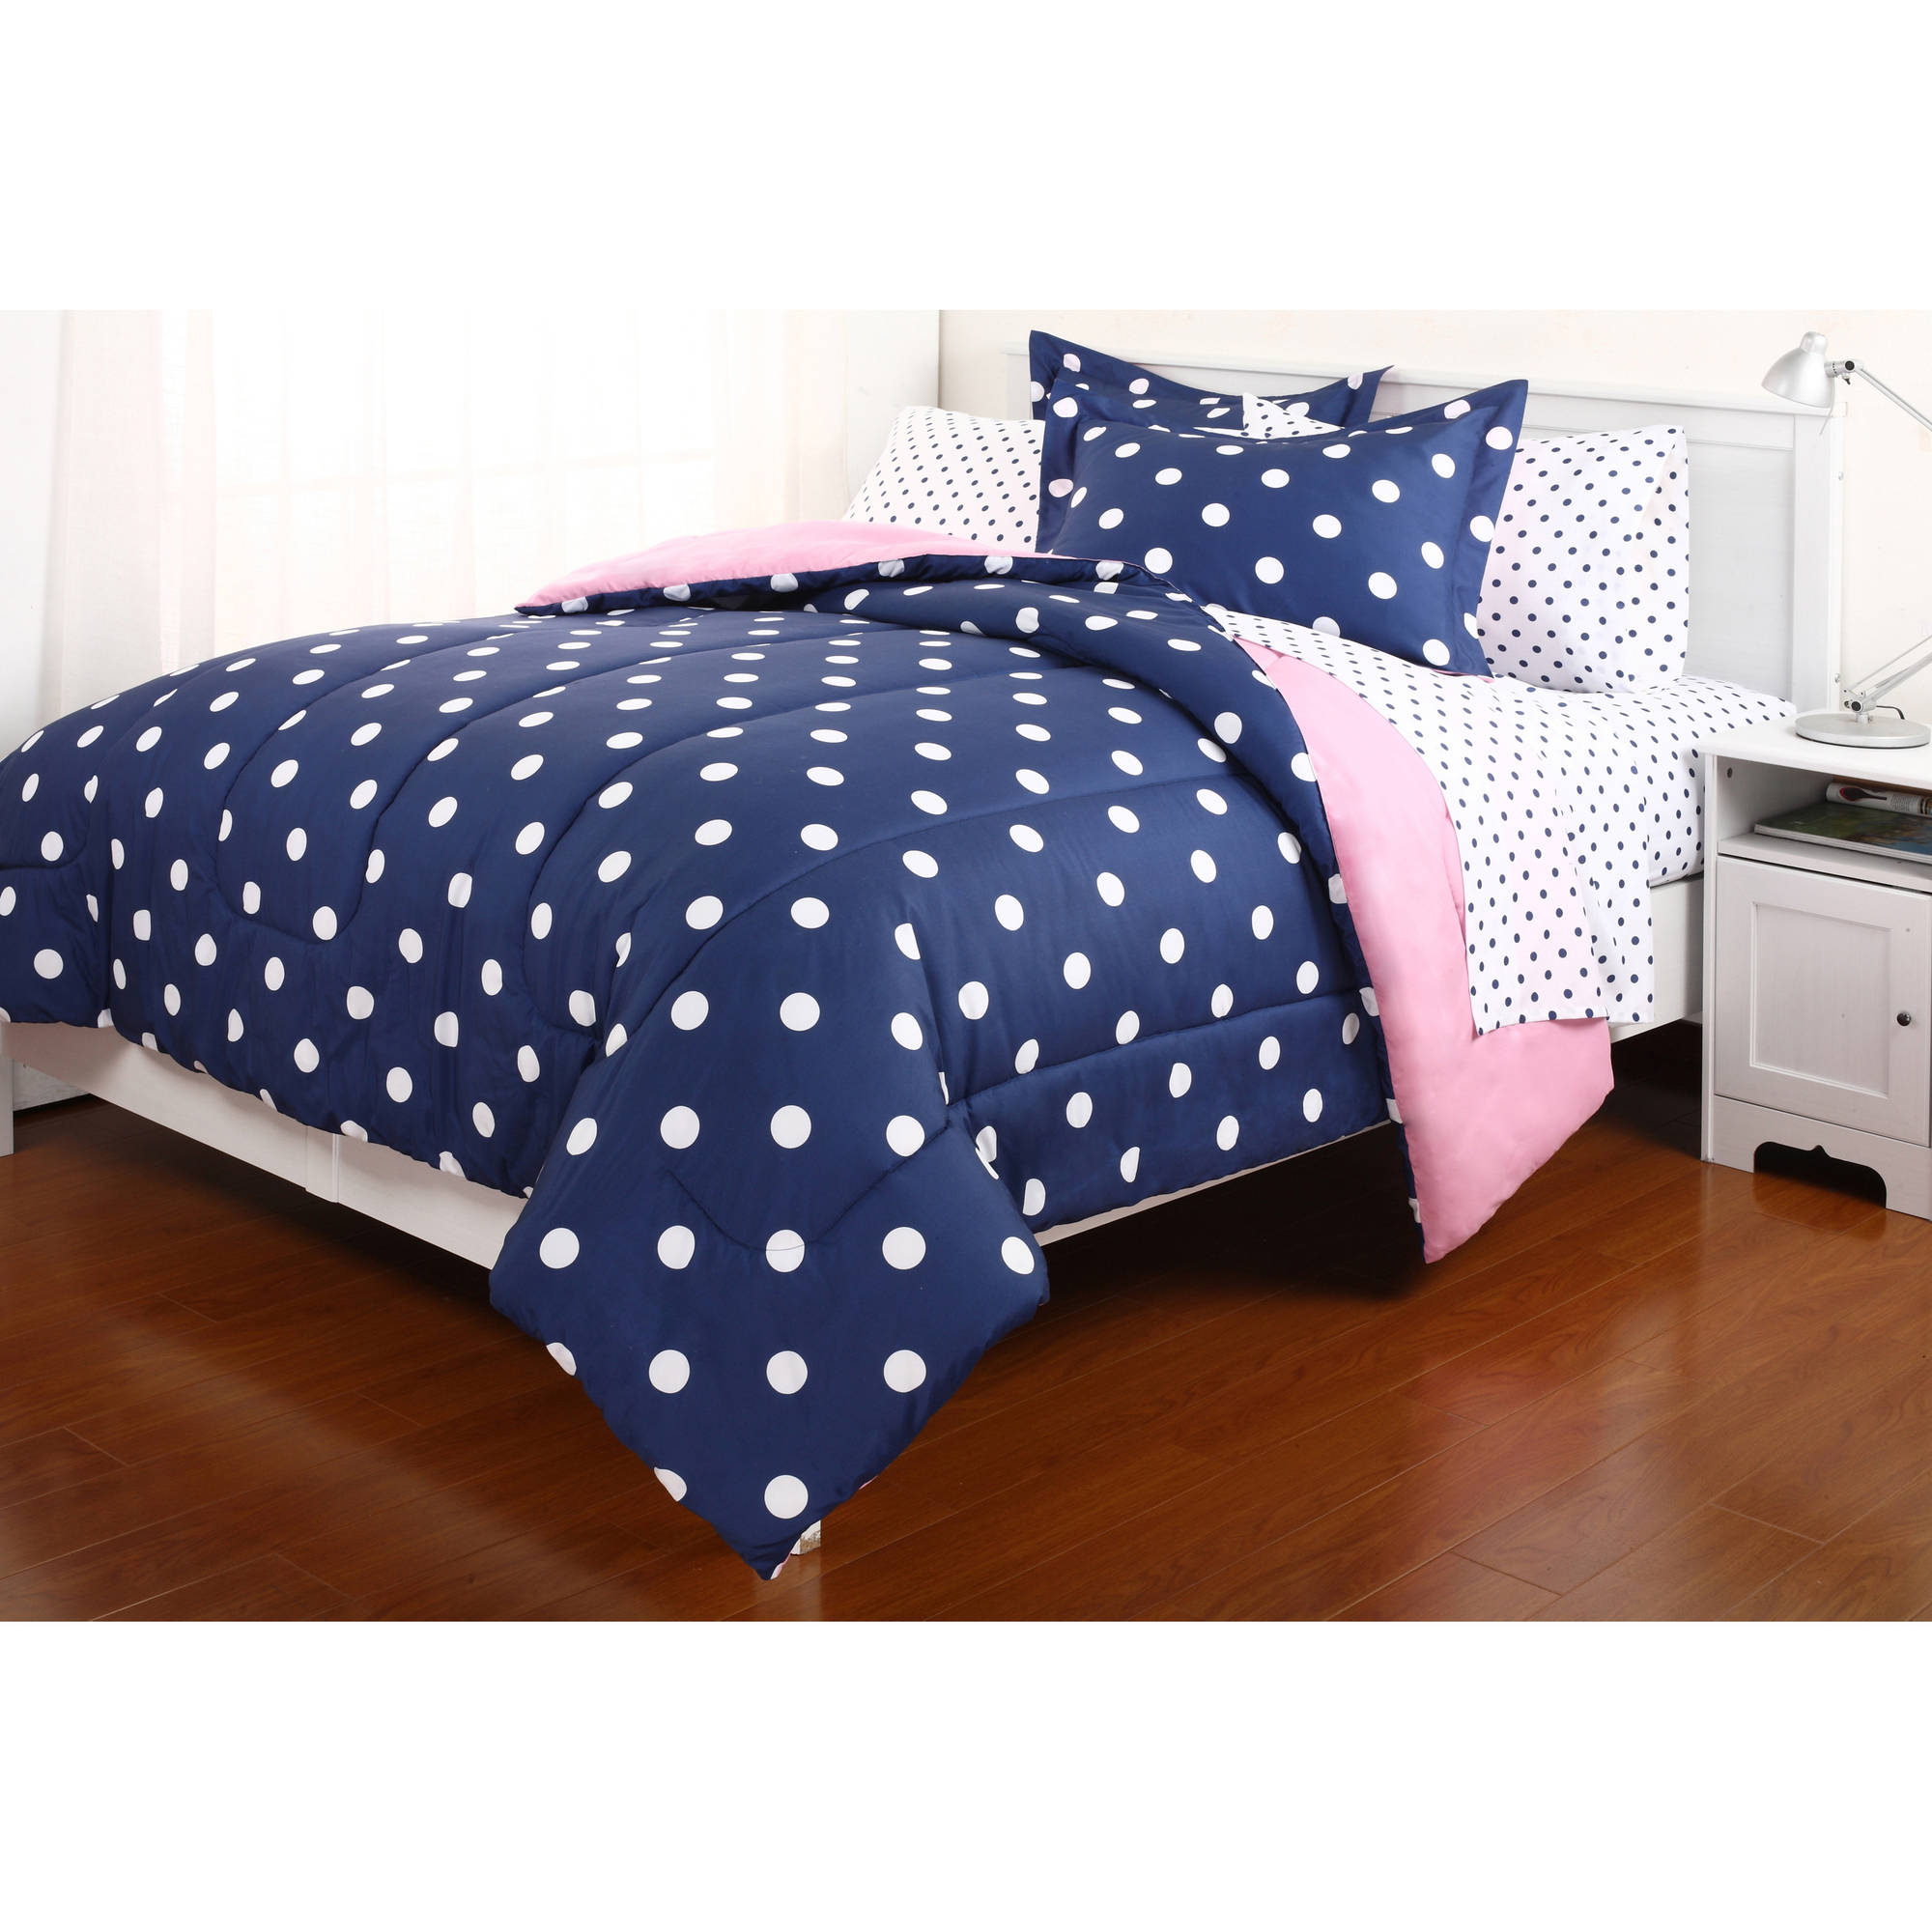 Polka Dot Reversible Bed In A Bag Bedding Set   Walmart.com